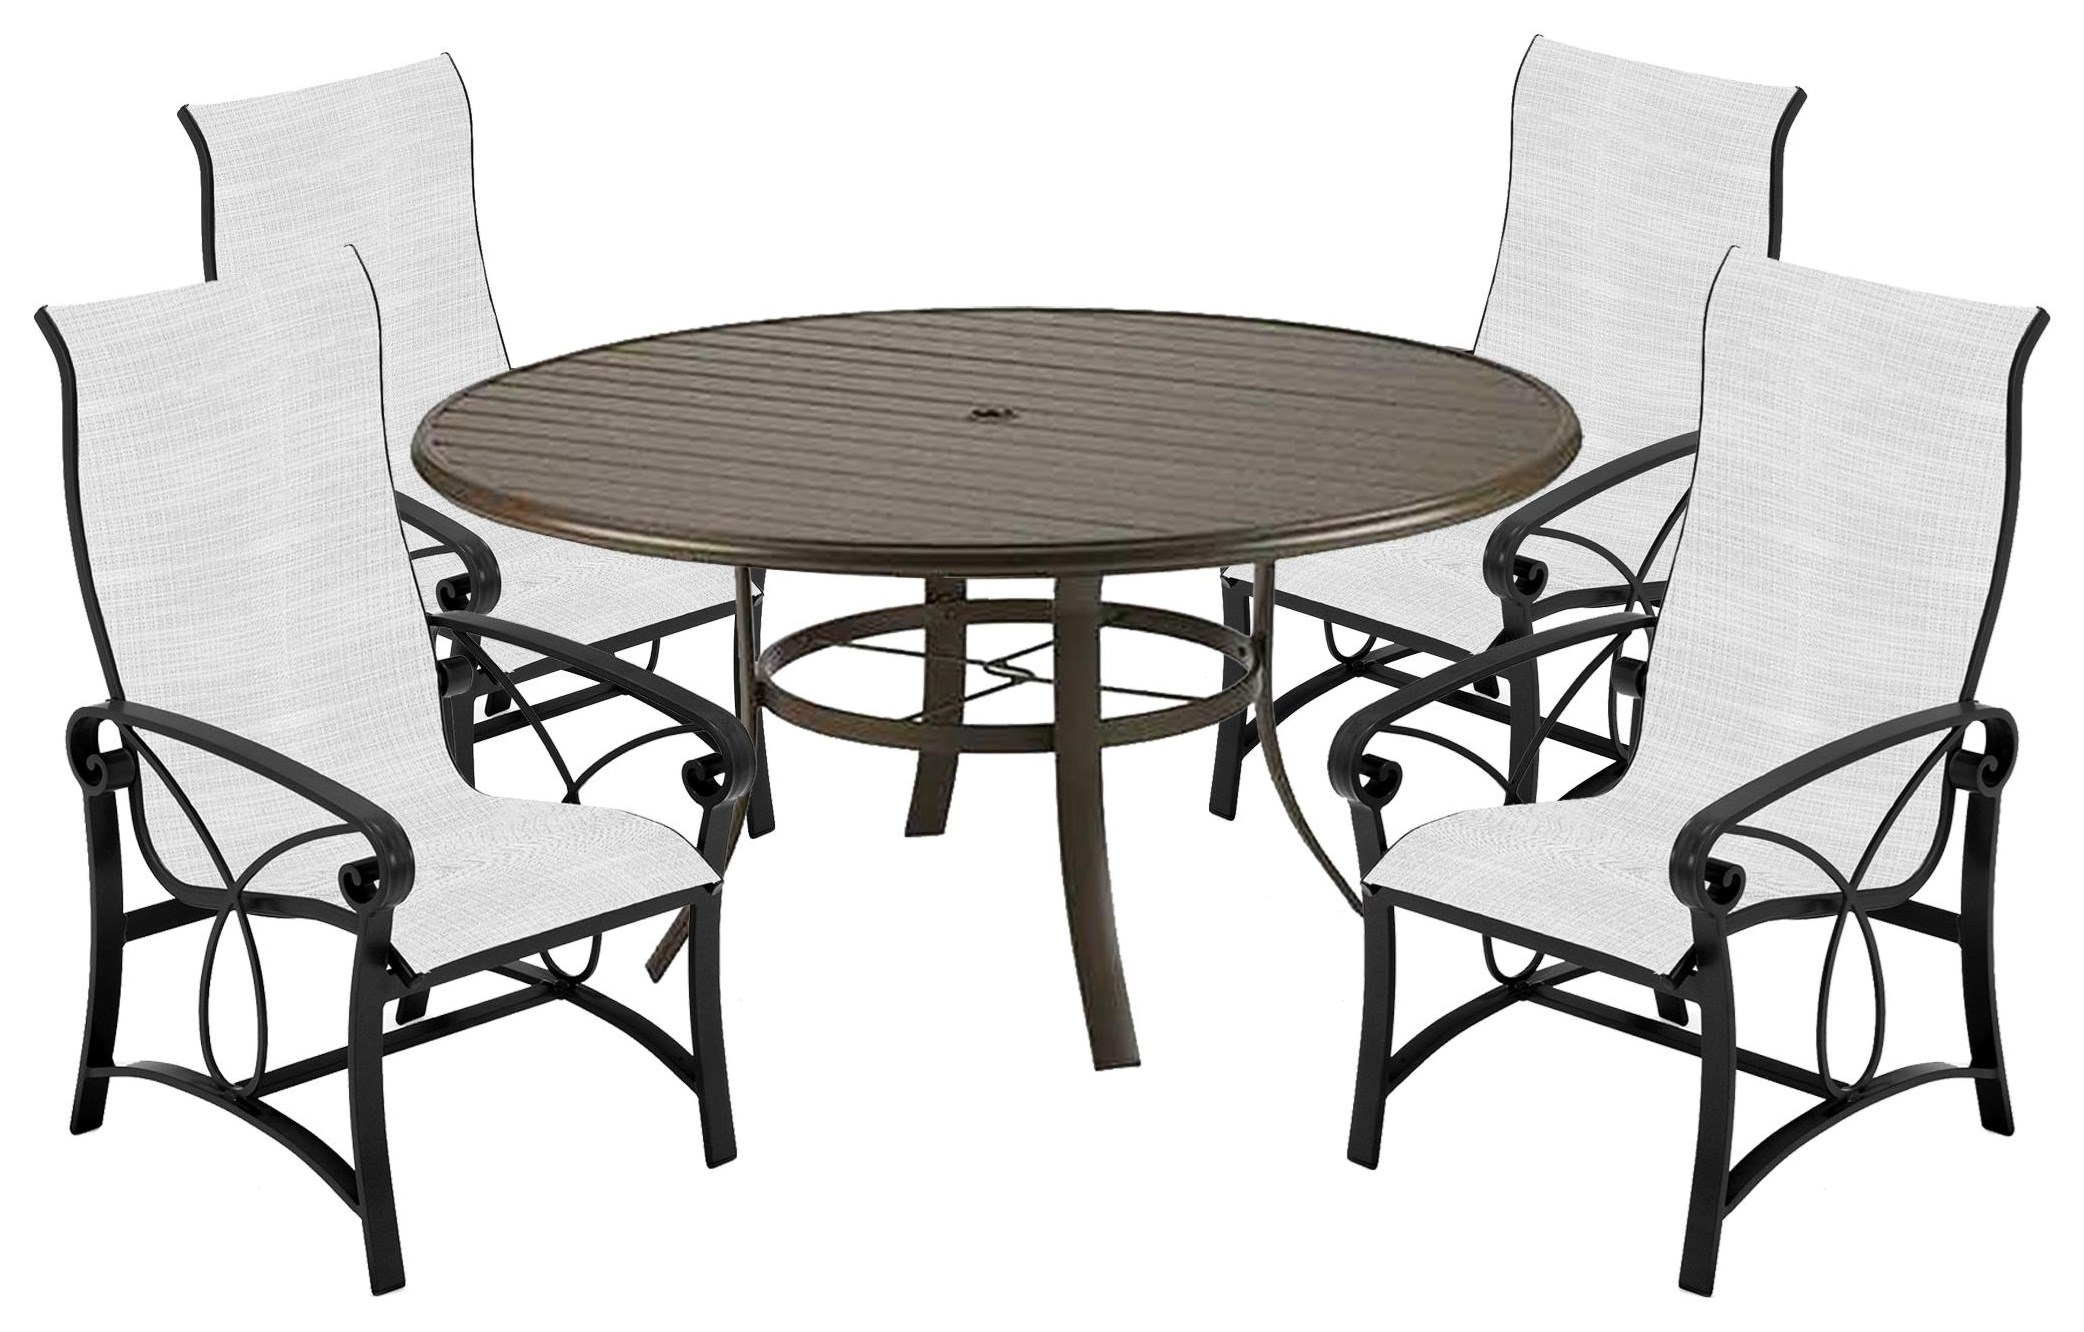 Palazzo Sling 54 Inch Table and Chairs by Winston at Johnny Janosik